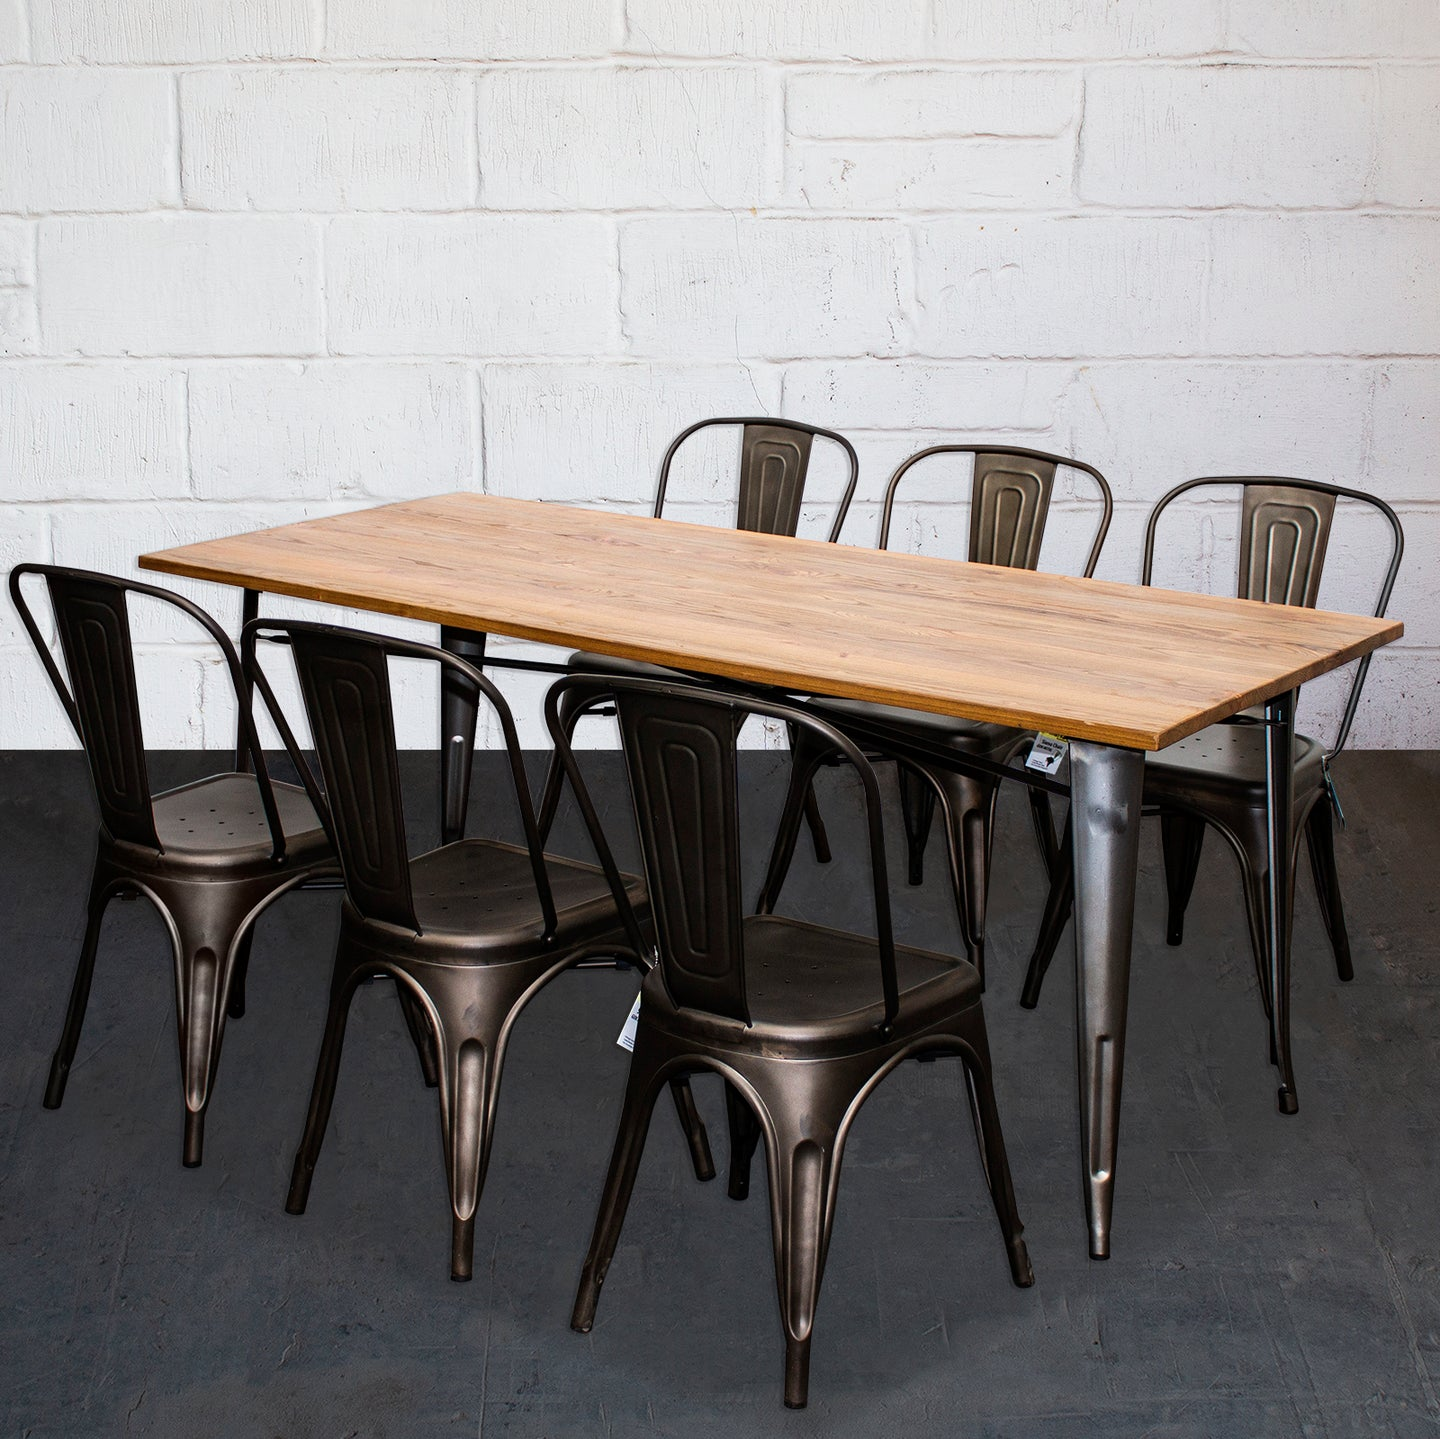 7PC Taranto Table & 6 Siena Chairs Set - Gun Metal Grey